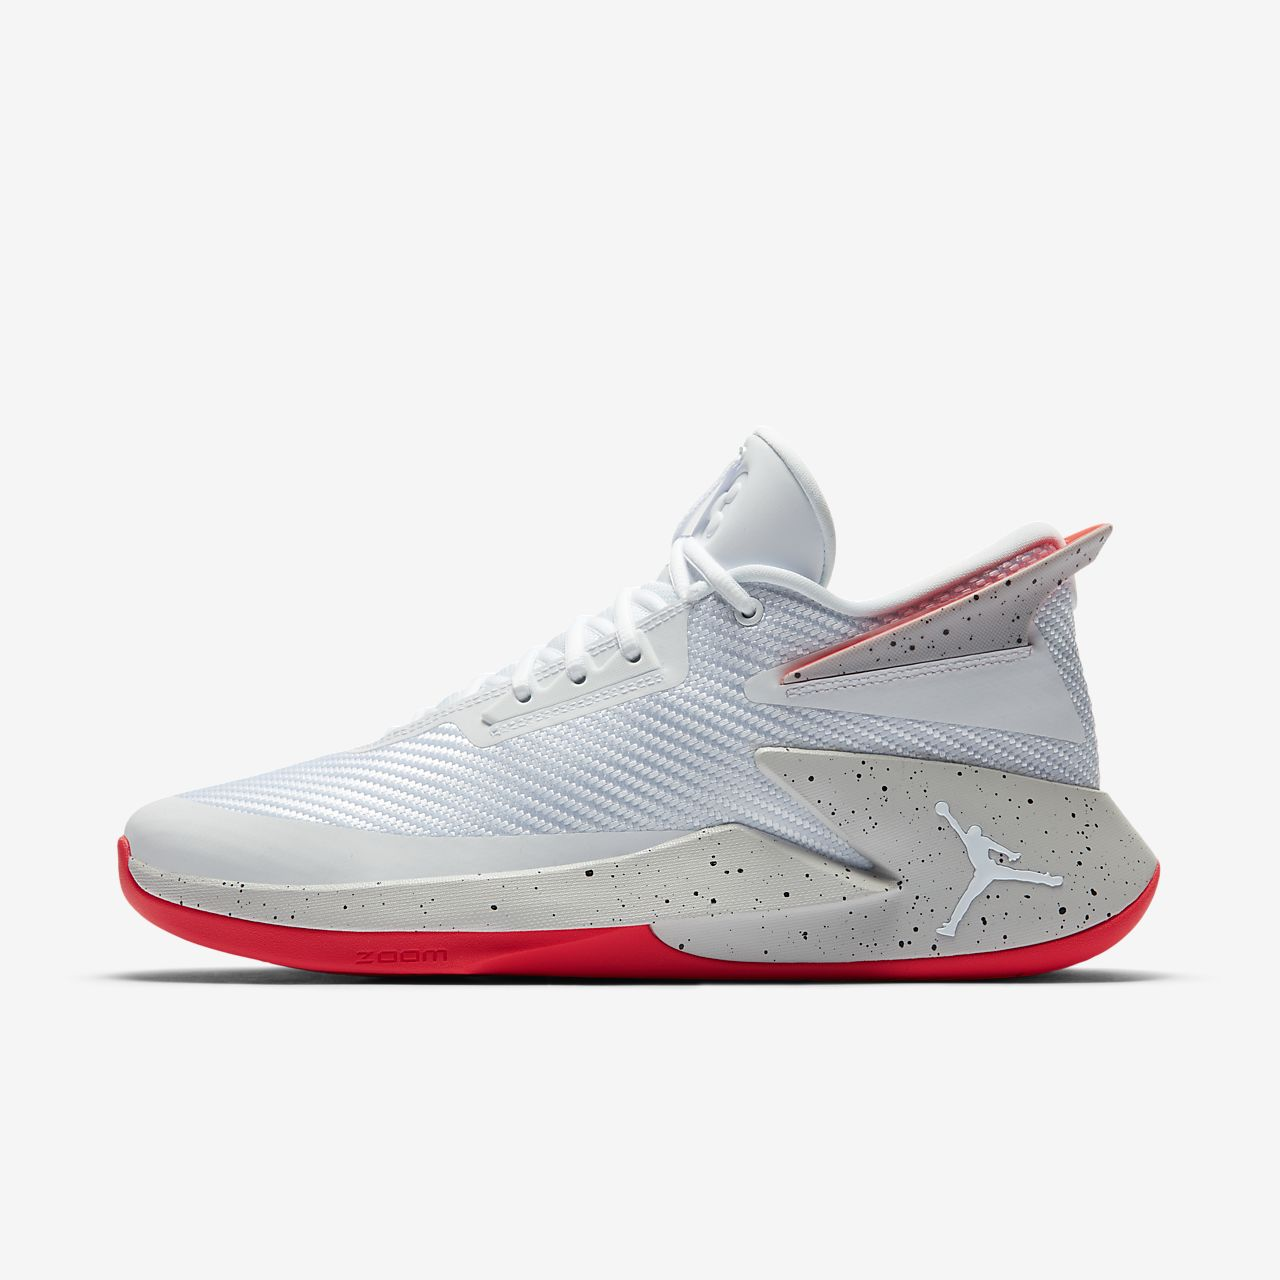 ... denmark jordan fly lockdown mens basketball shoe 8f37e 31fd5 9f3599c33